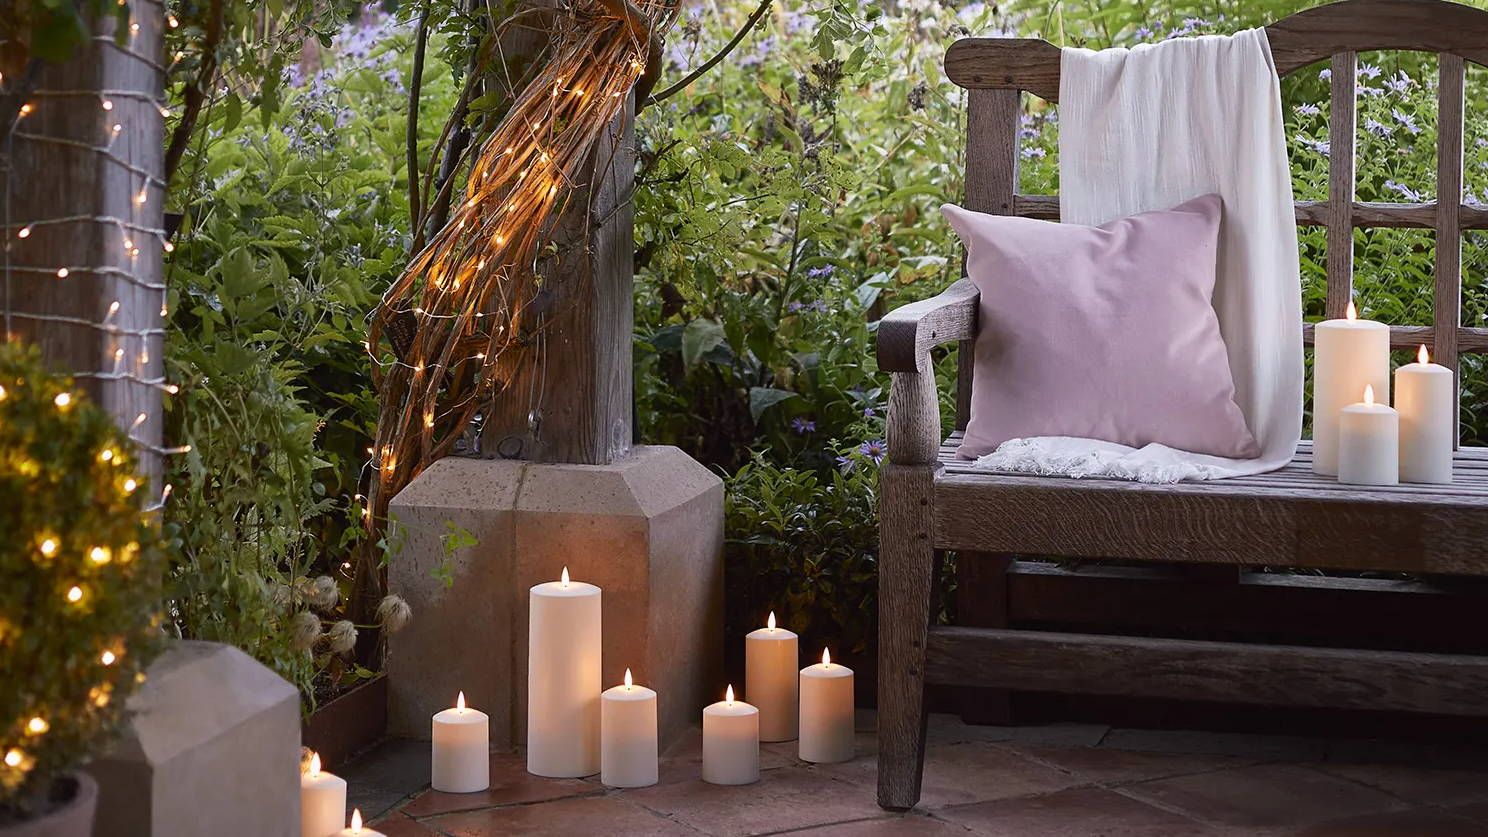 Courtyard setting with outdoor TruGlow candles and fairy lights illuminated